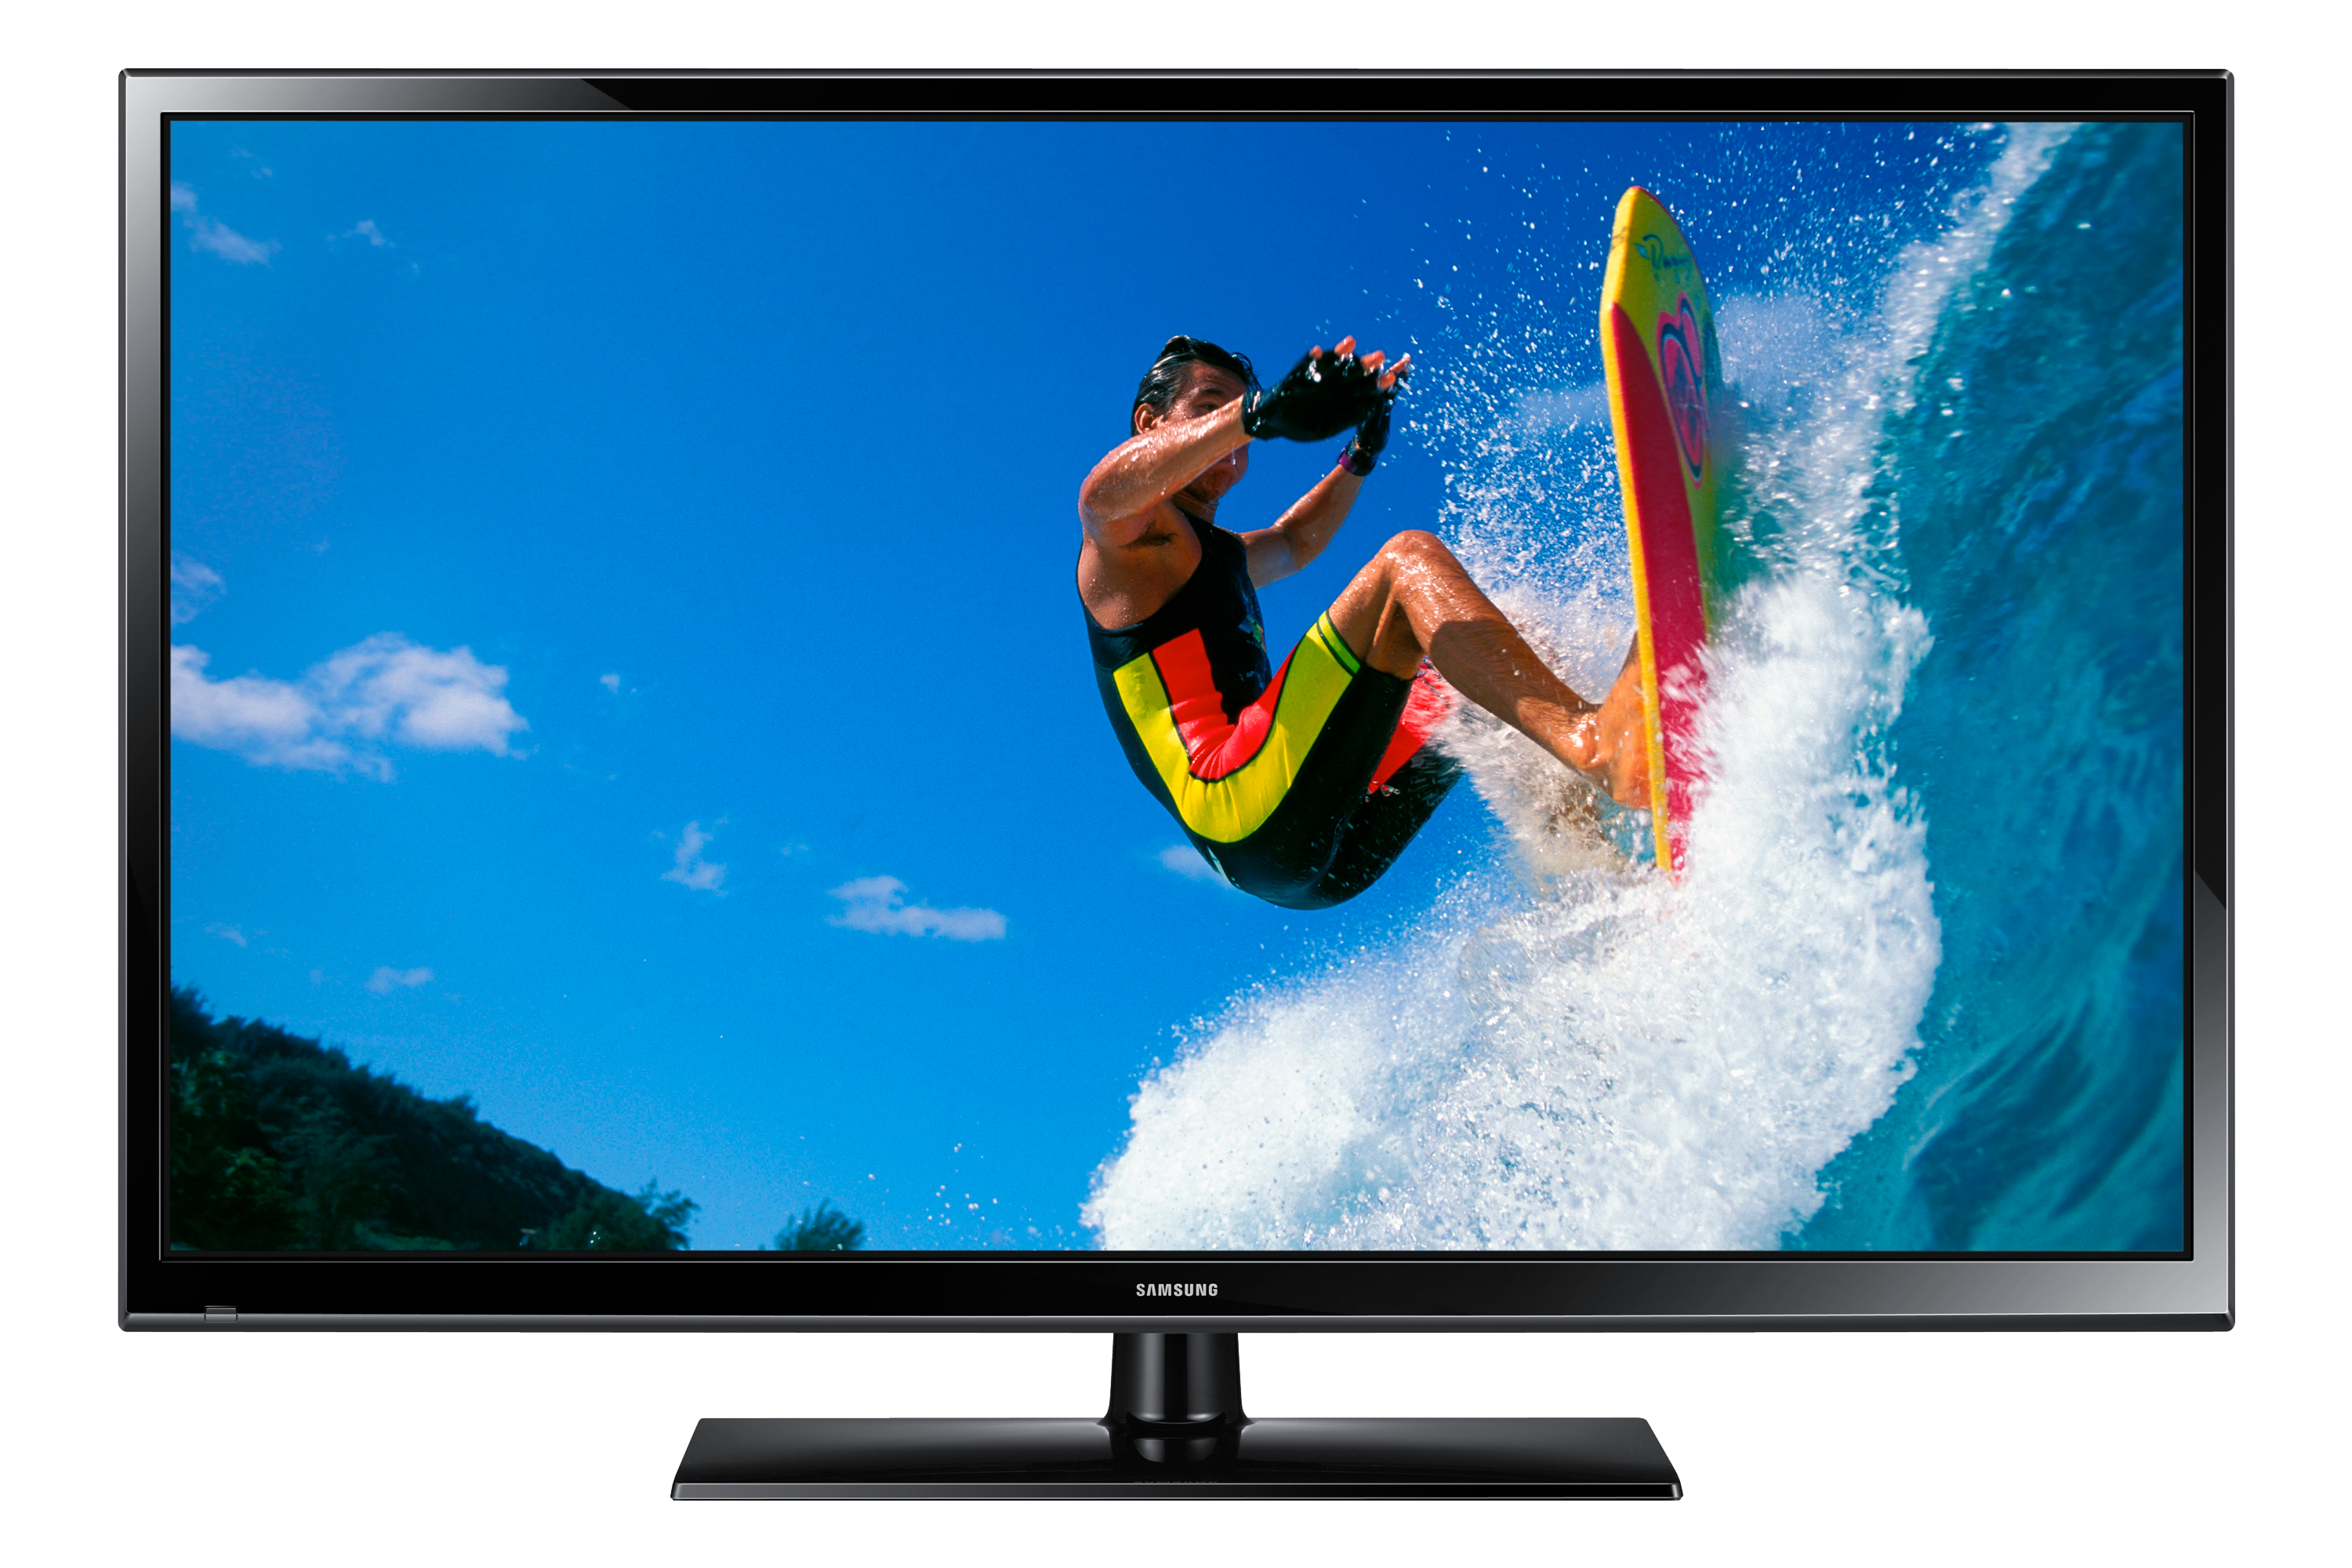 Samsung 43 Inch H4500 Series 4 Plasma Tv With Football Mode